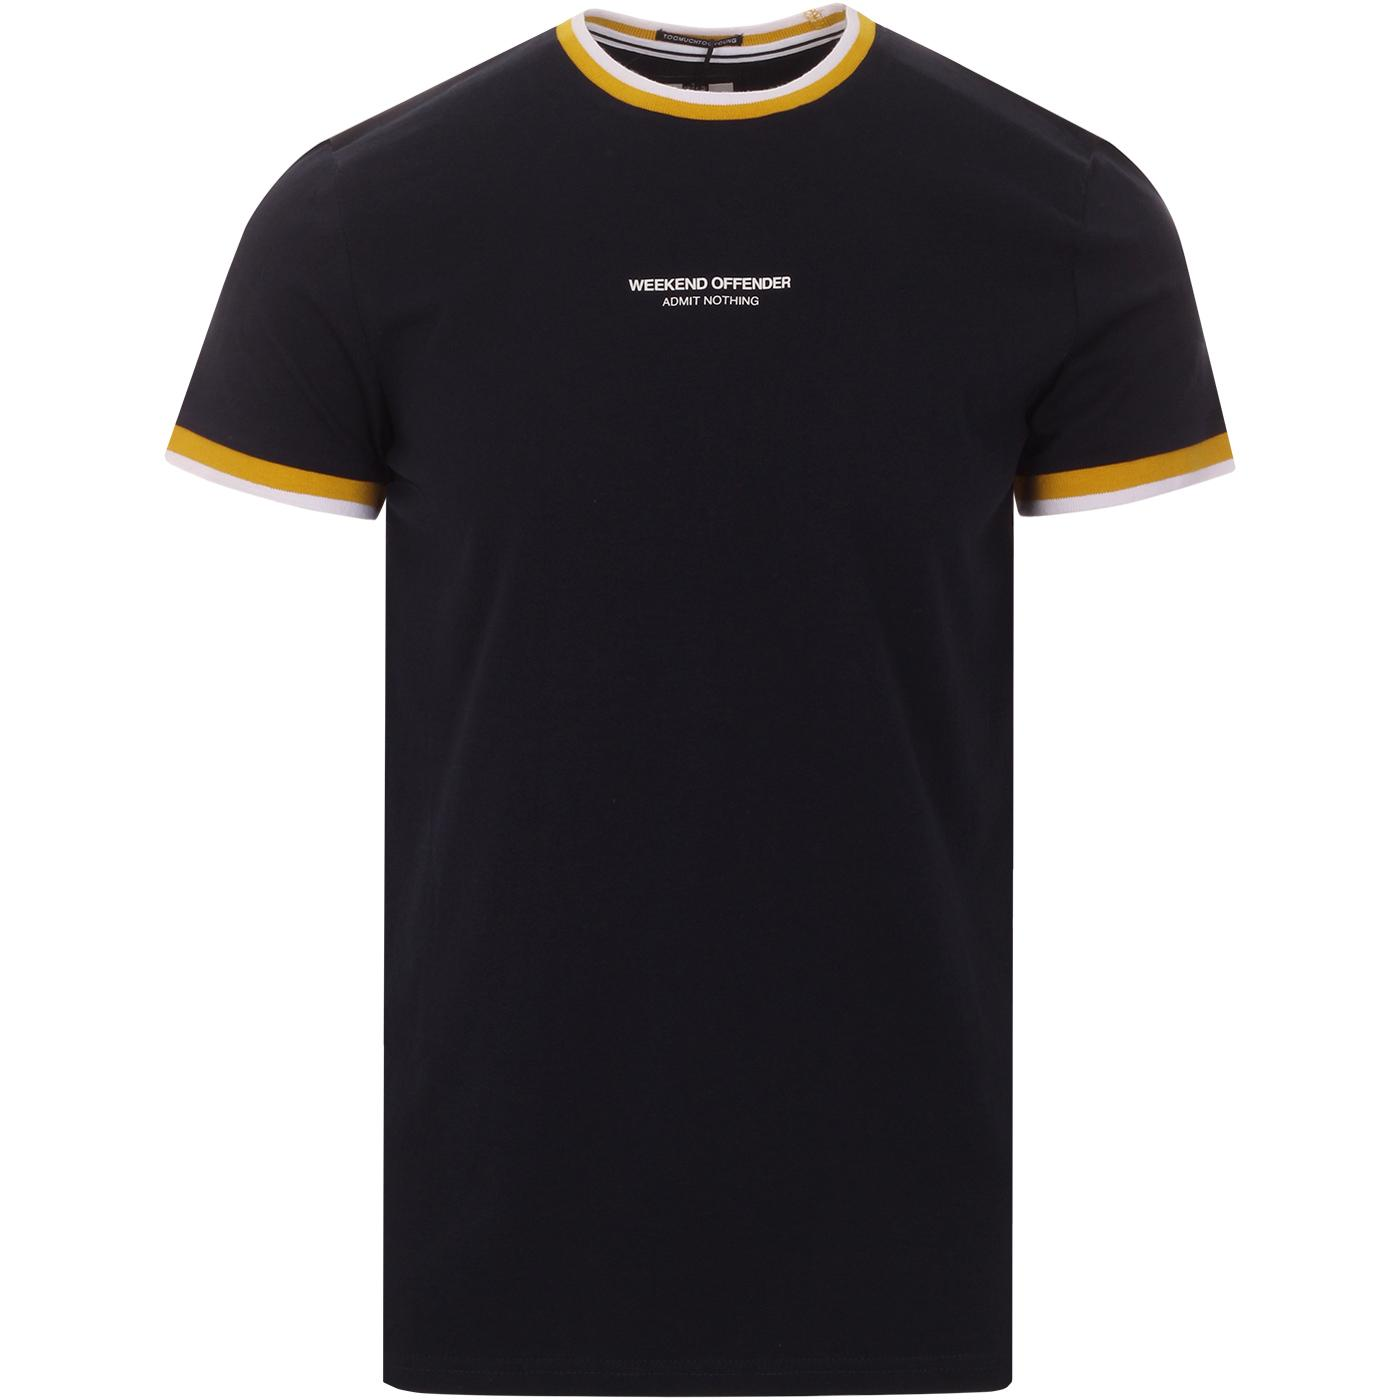 Fonesca WEEKEND OFFENDER Mens Retro Ringer Tee